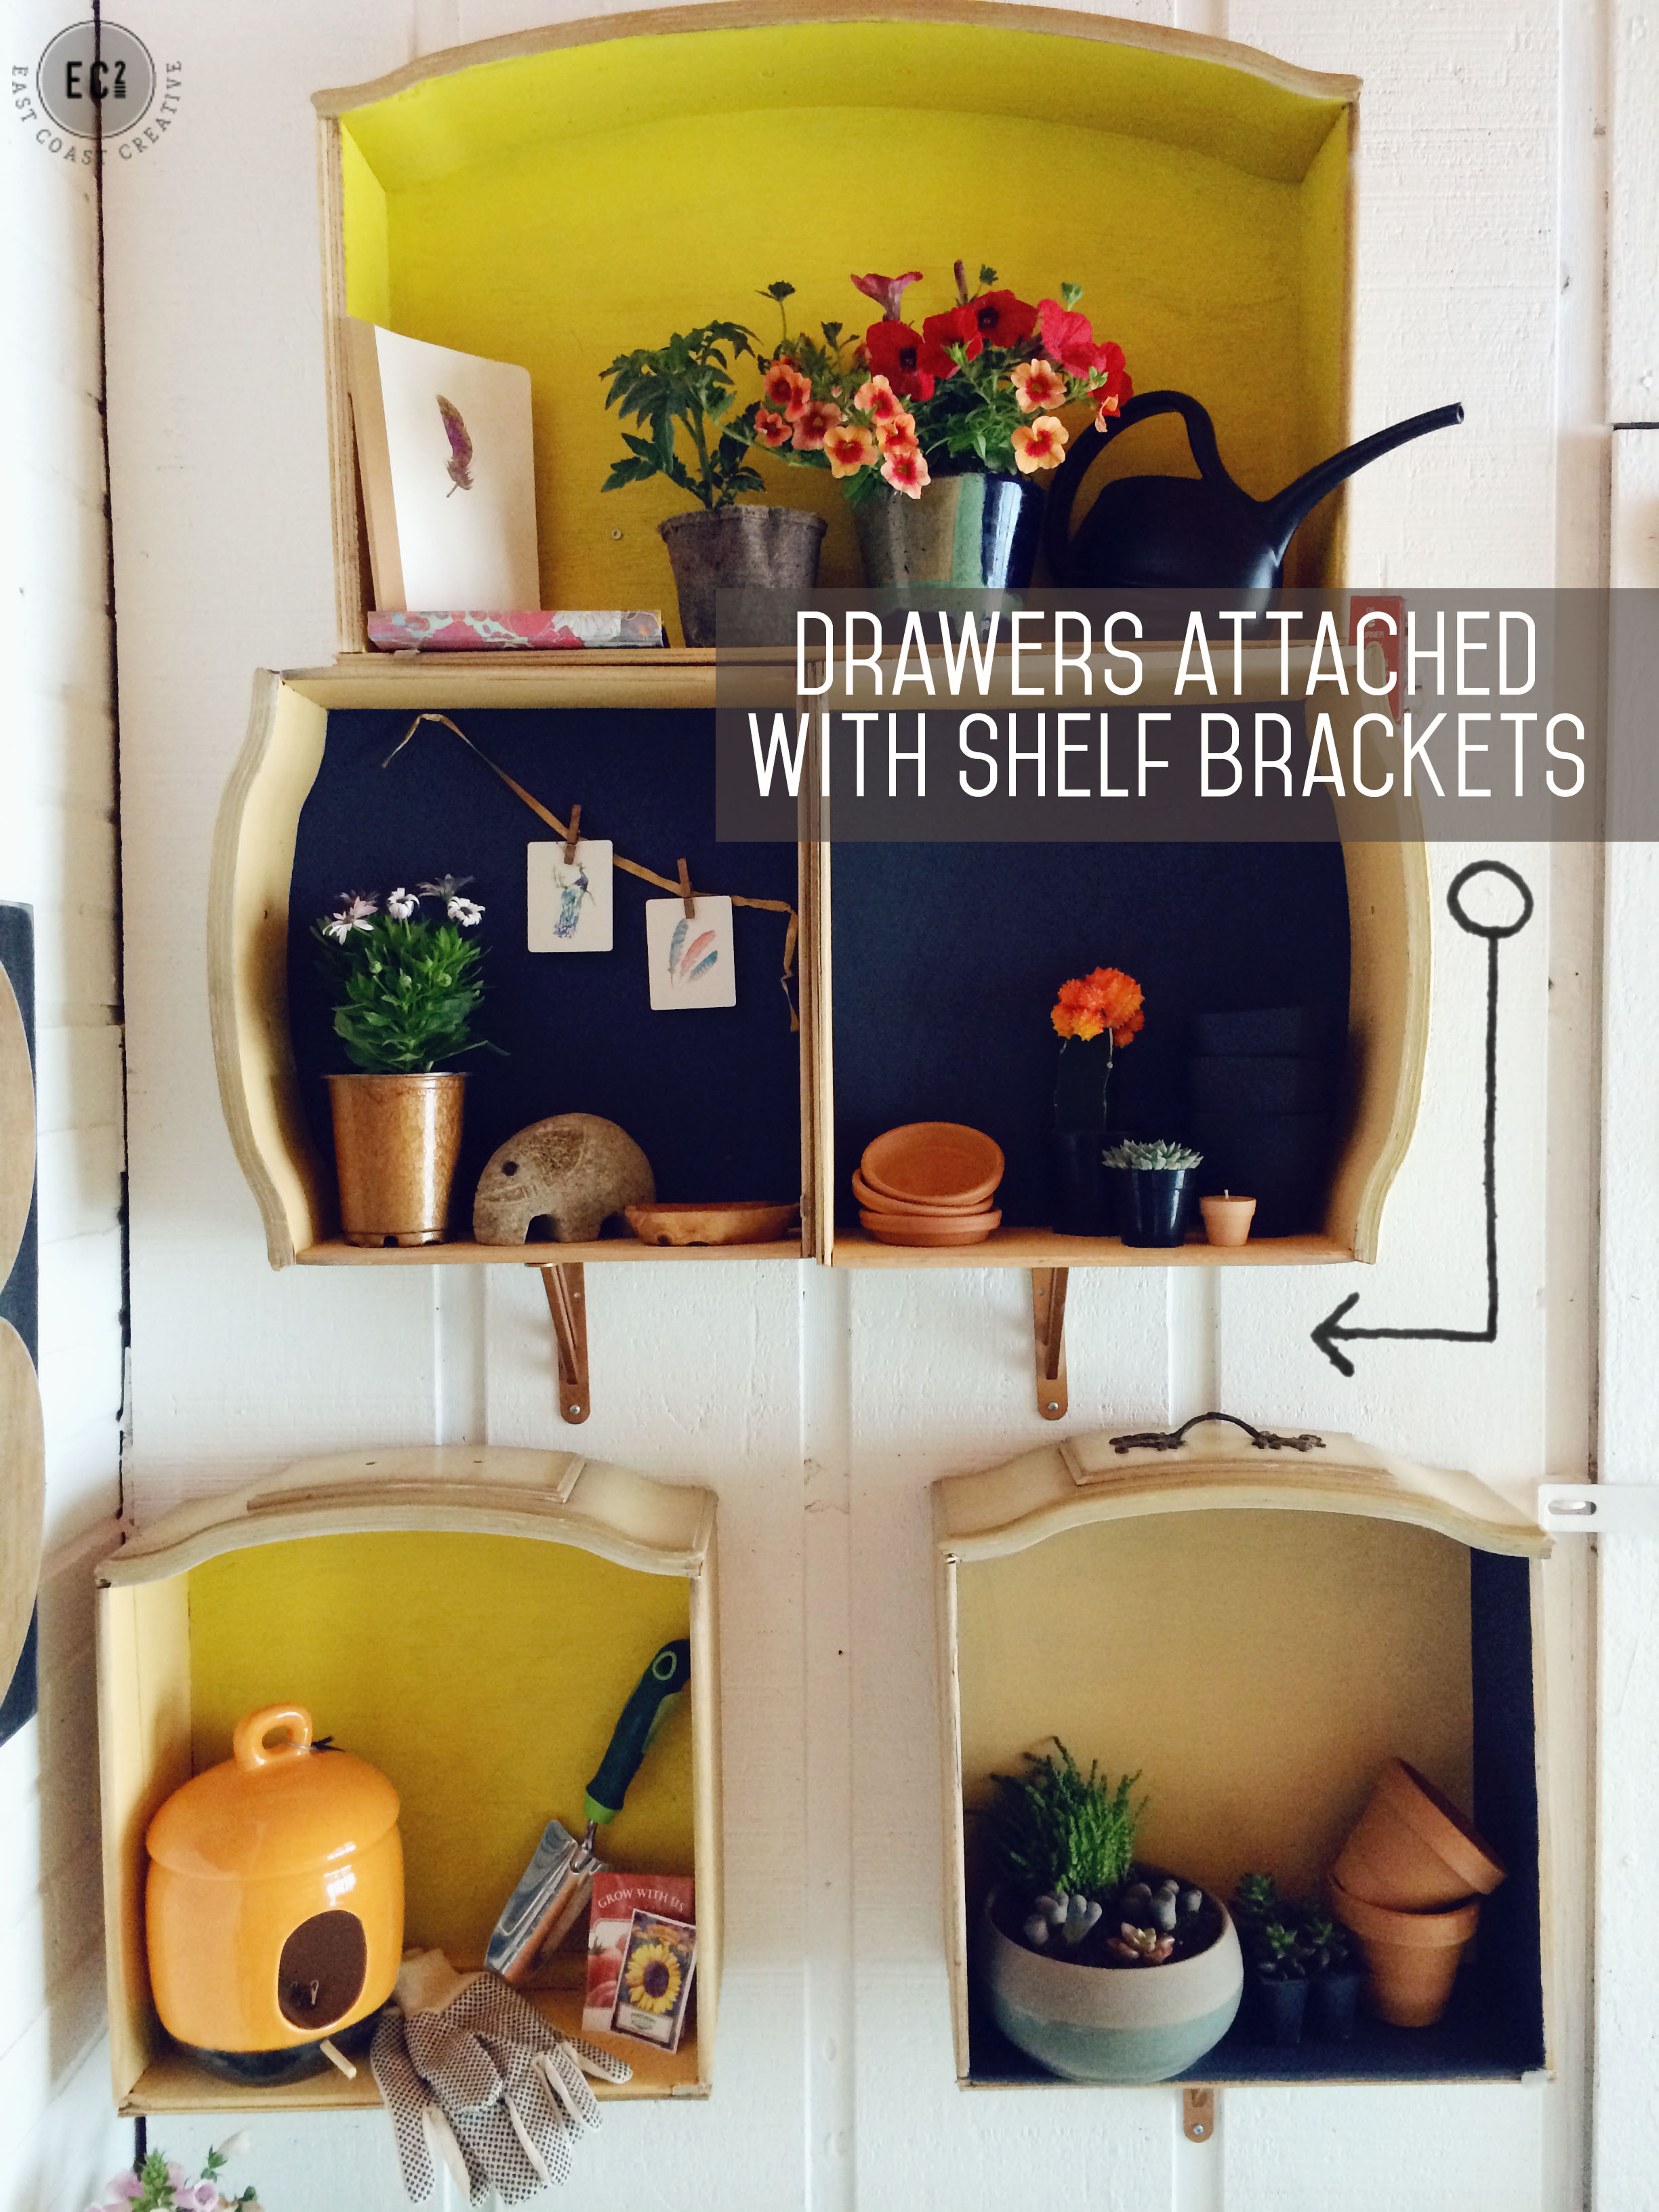 how to make wall shelves out of old dresser drawers - east coast